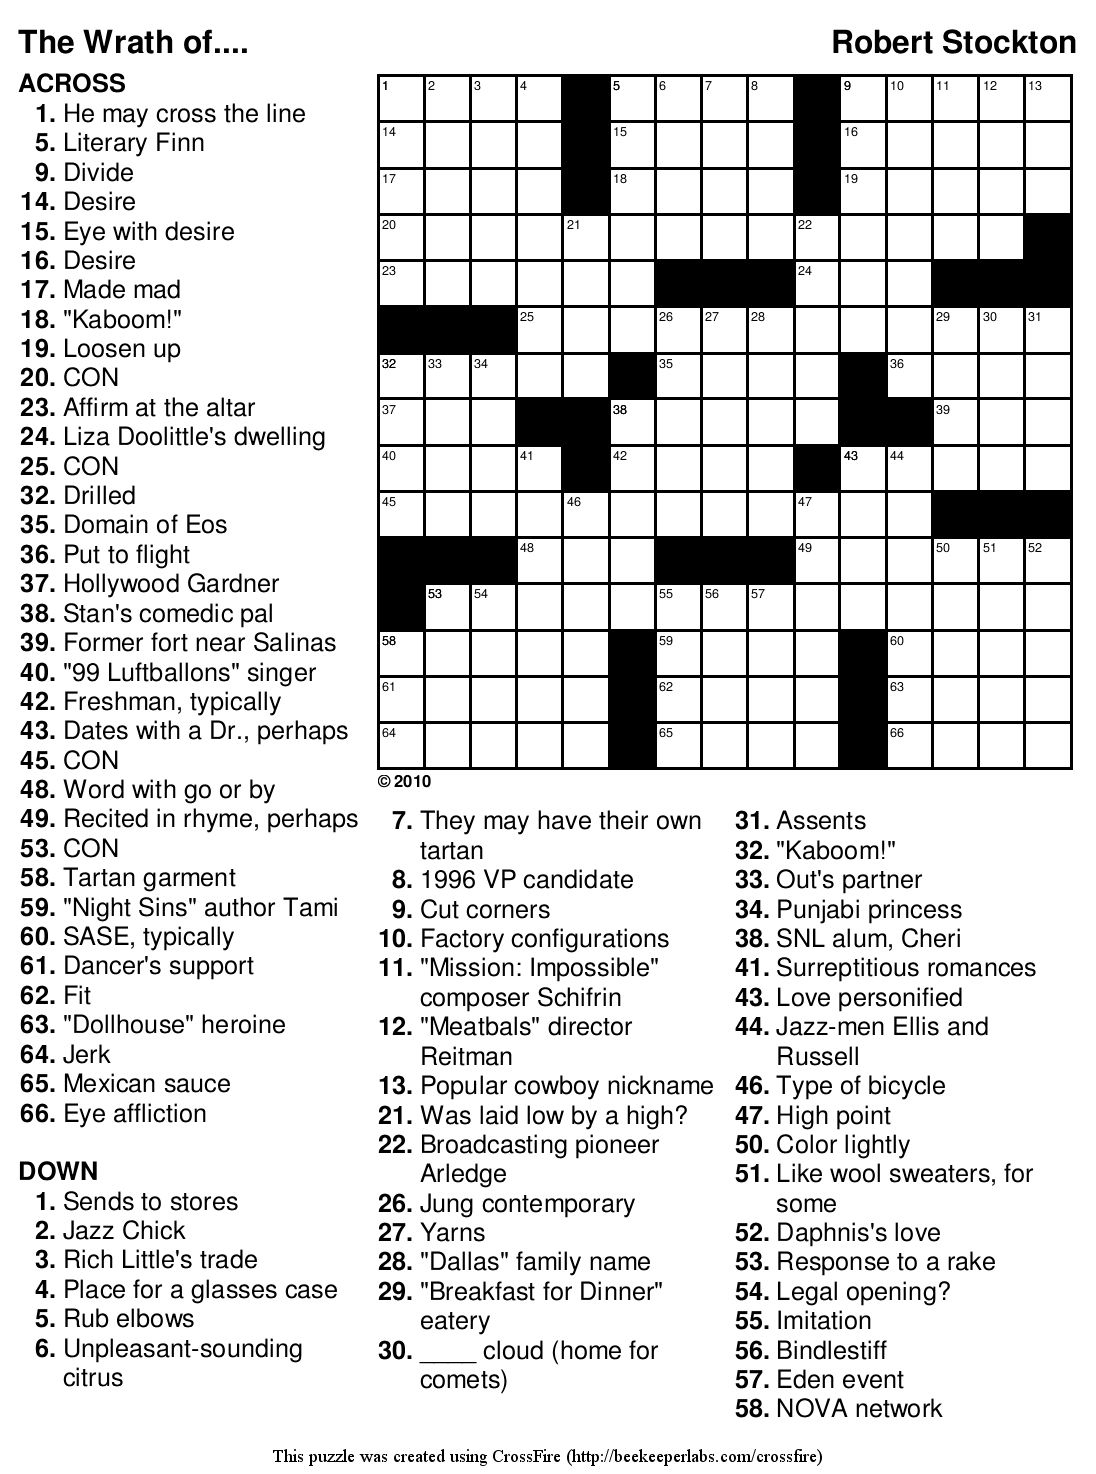 Marvelous Crossword Puzzles Easy Printable Free Org | Chas's Board - Free Printable Crossword Puzzle #1 Answers